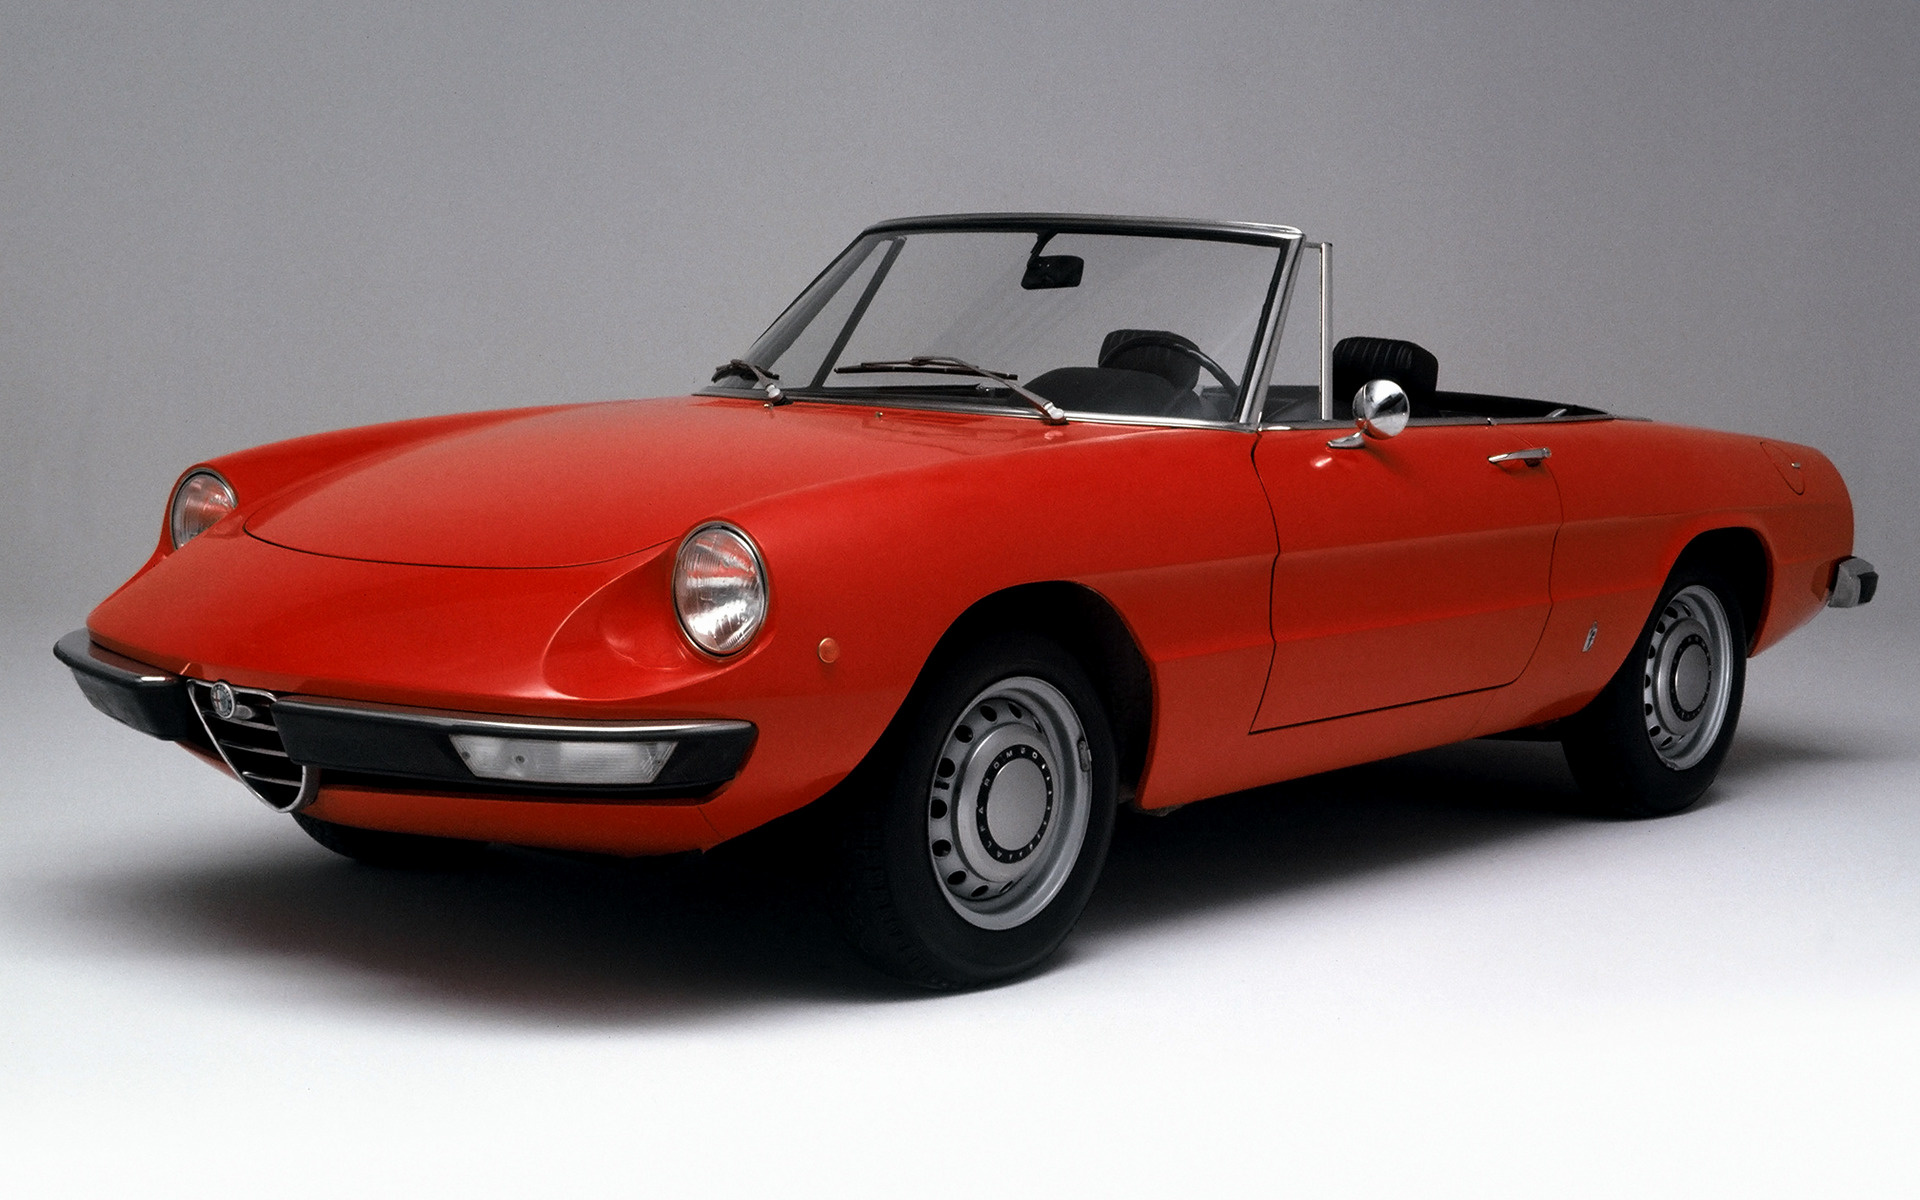 alfa romeo spider 1300 junior (1969) wallpapers and hd images